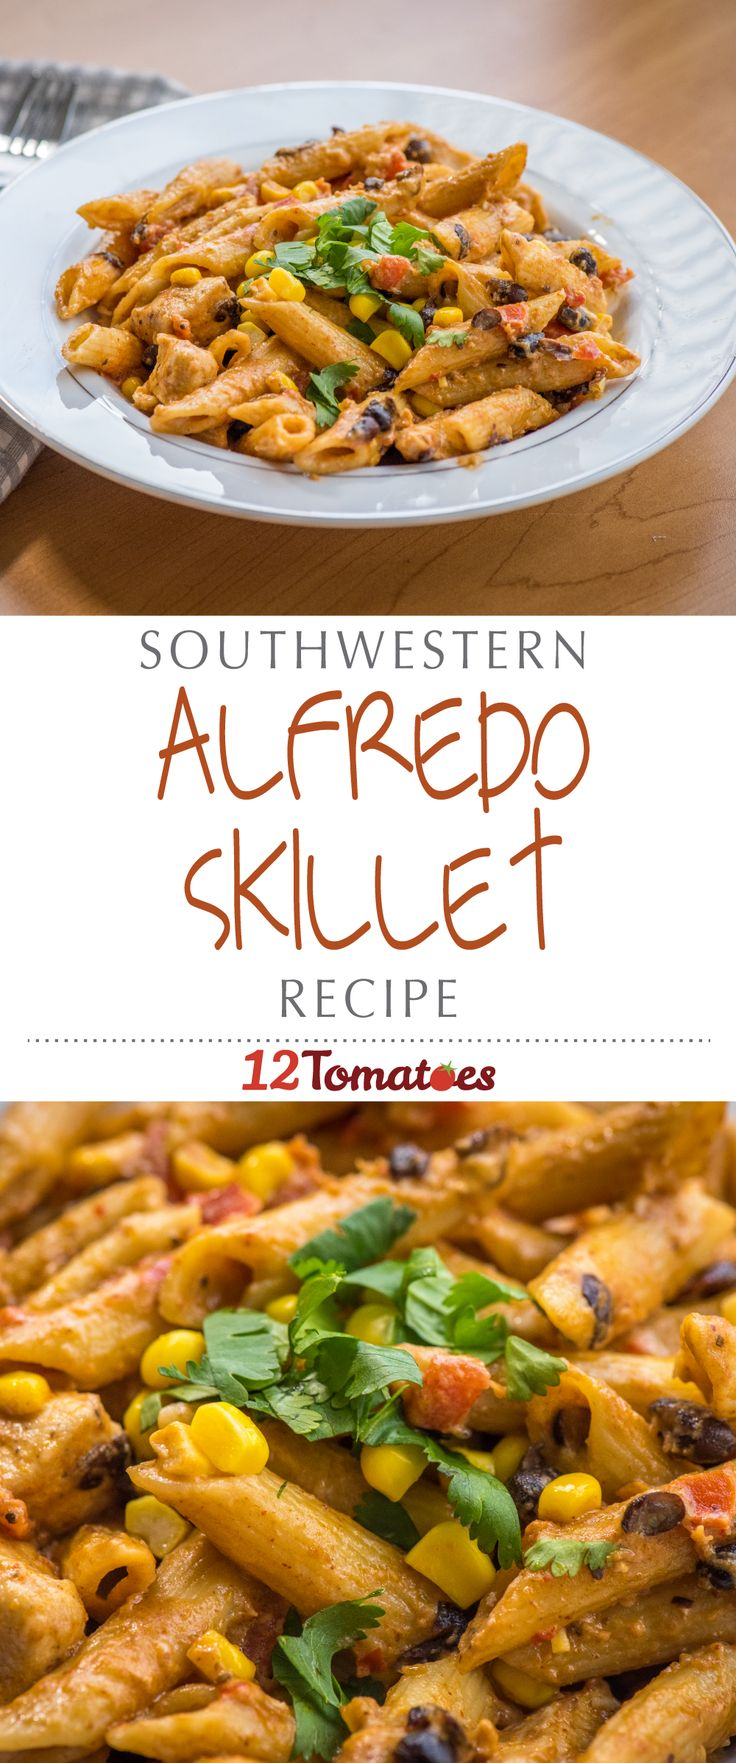 Southwestern Chicken Alfredo Skillet | This dish is so creamy and flavorful, and the zesty south-of-the-border spices are mellowed out by the velvety, from-scratch alfredo sauce.